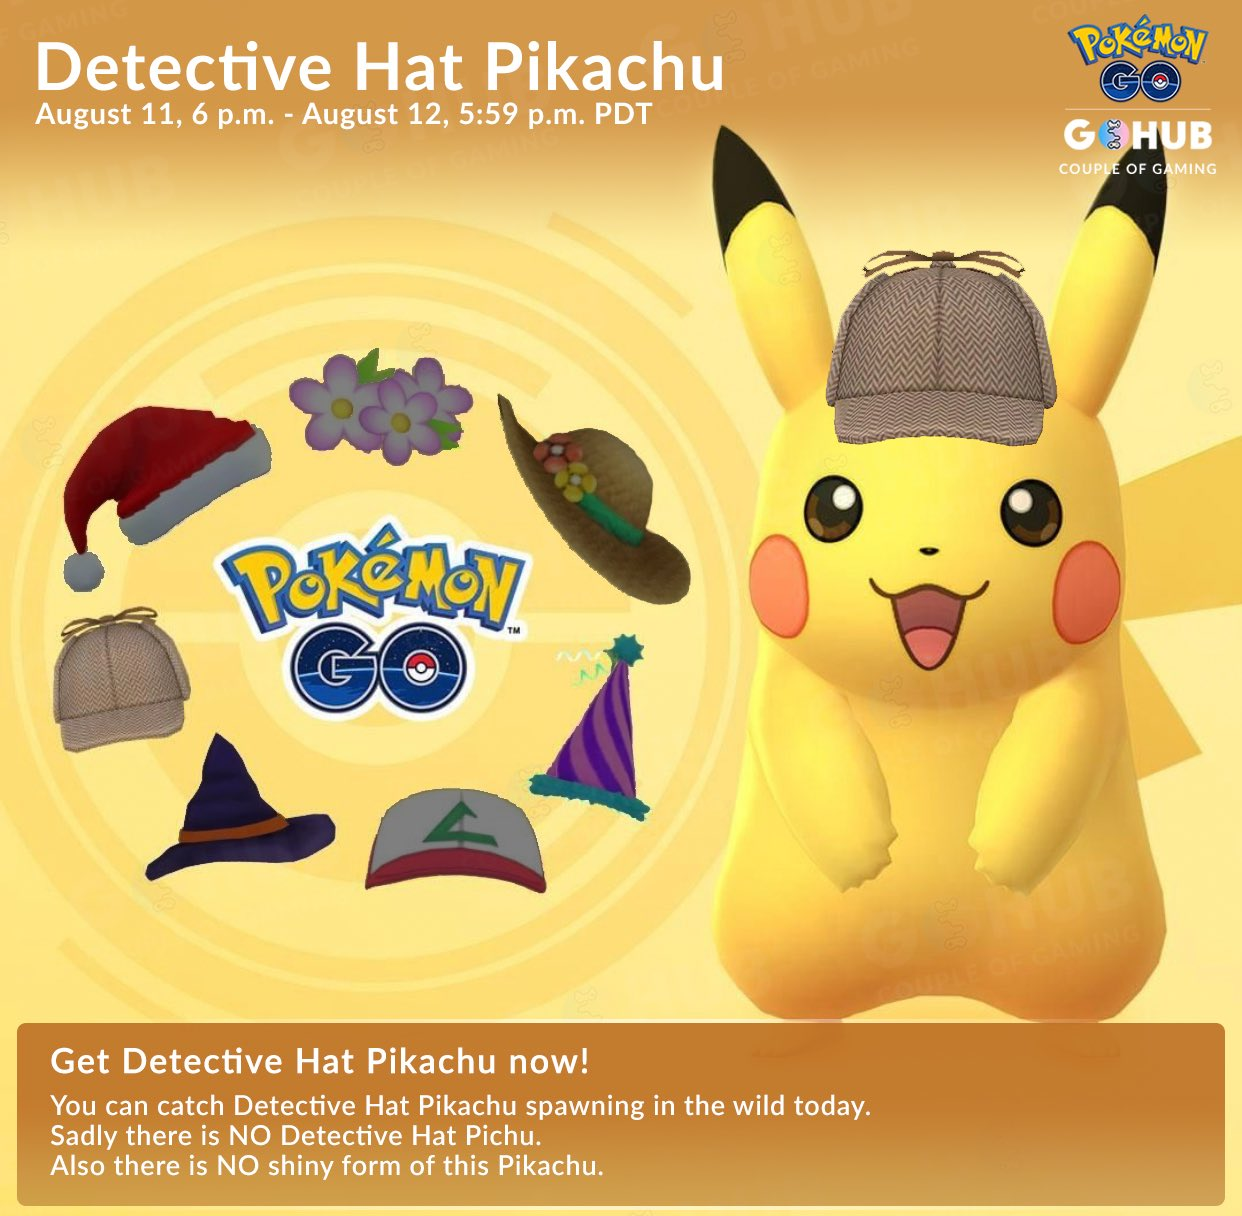 Couple Of Gaming A Twitter Last But Not Least Today You Ll Get A Chance To Encounter The Iconic Detectivepikachu In The Wild Sadly There Is No Detective Pichu